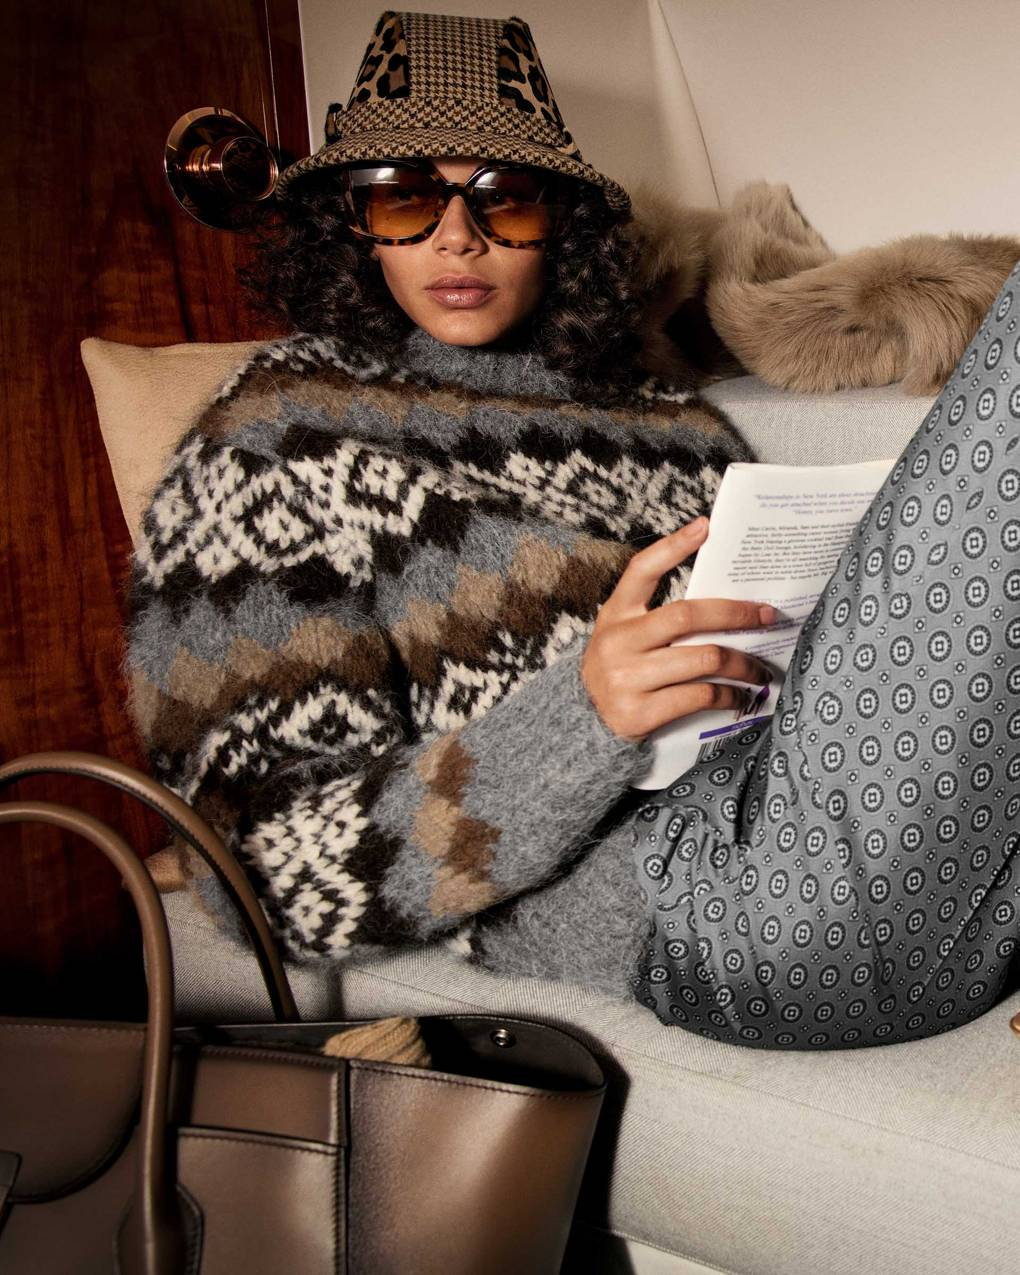 Michael Kors Campaigns Unveiled for Fall-Winter 2018/19